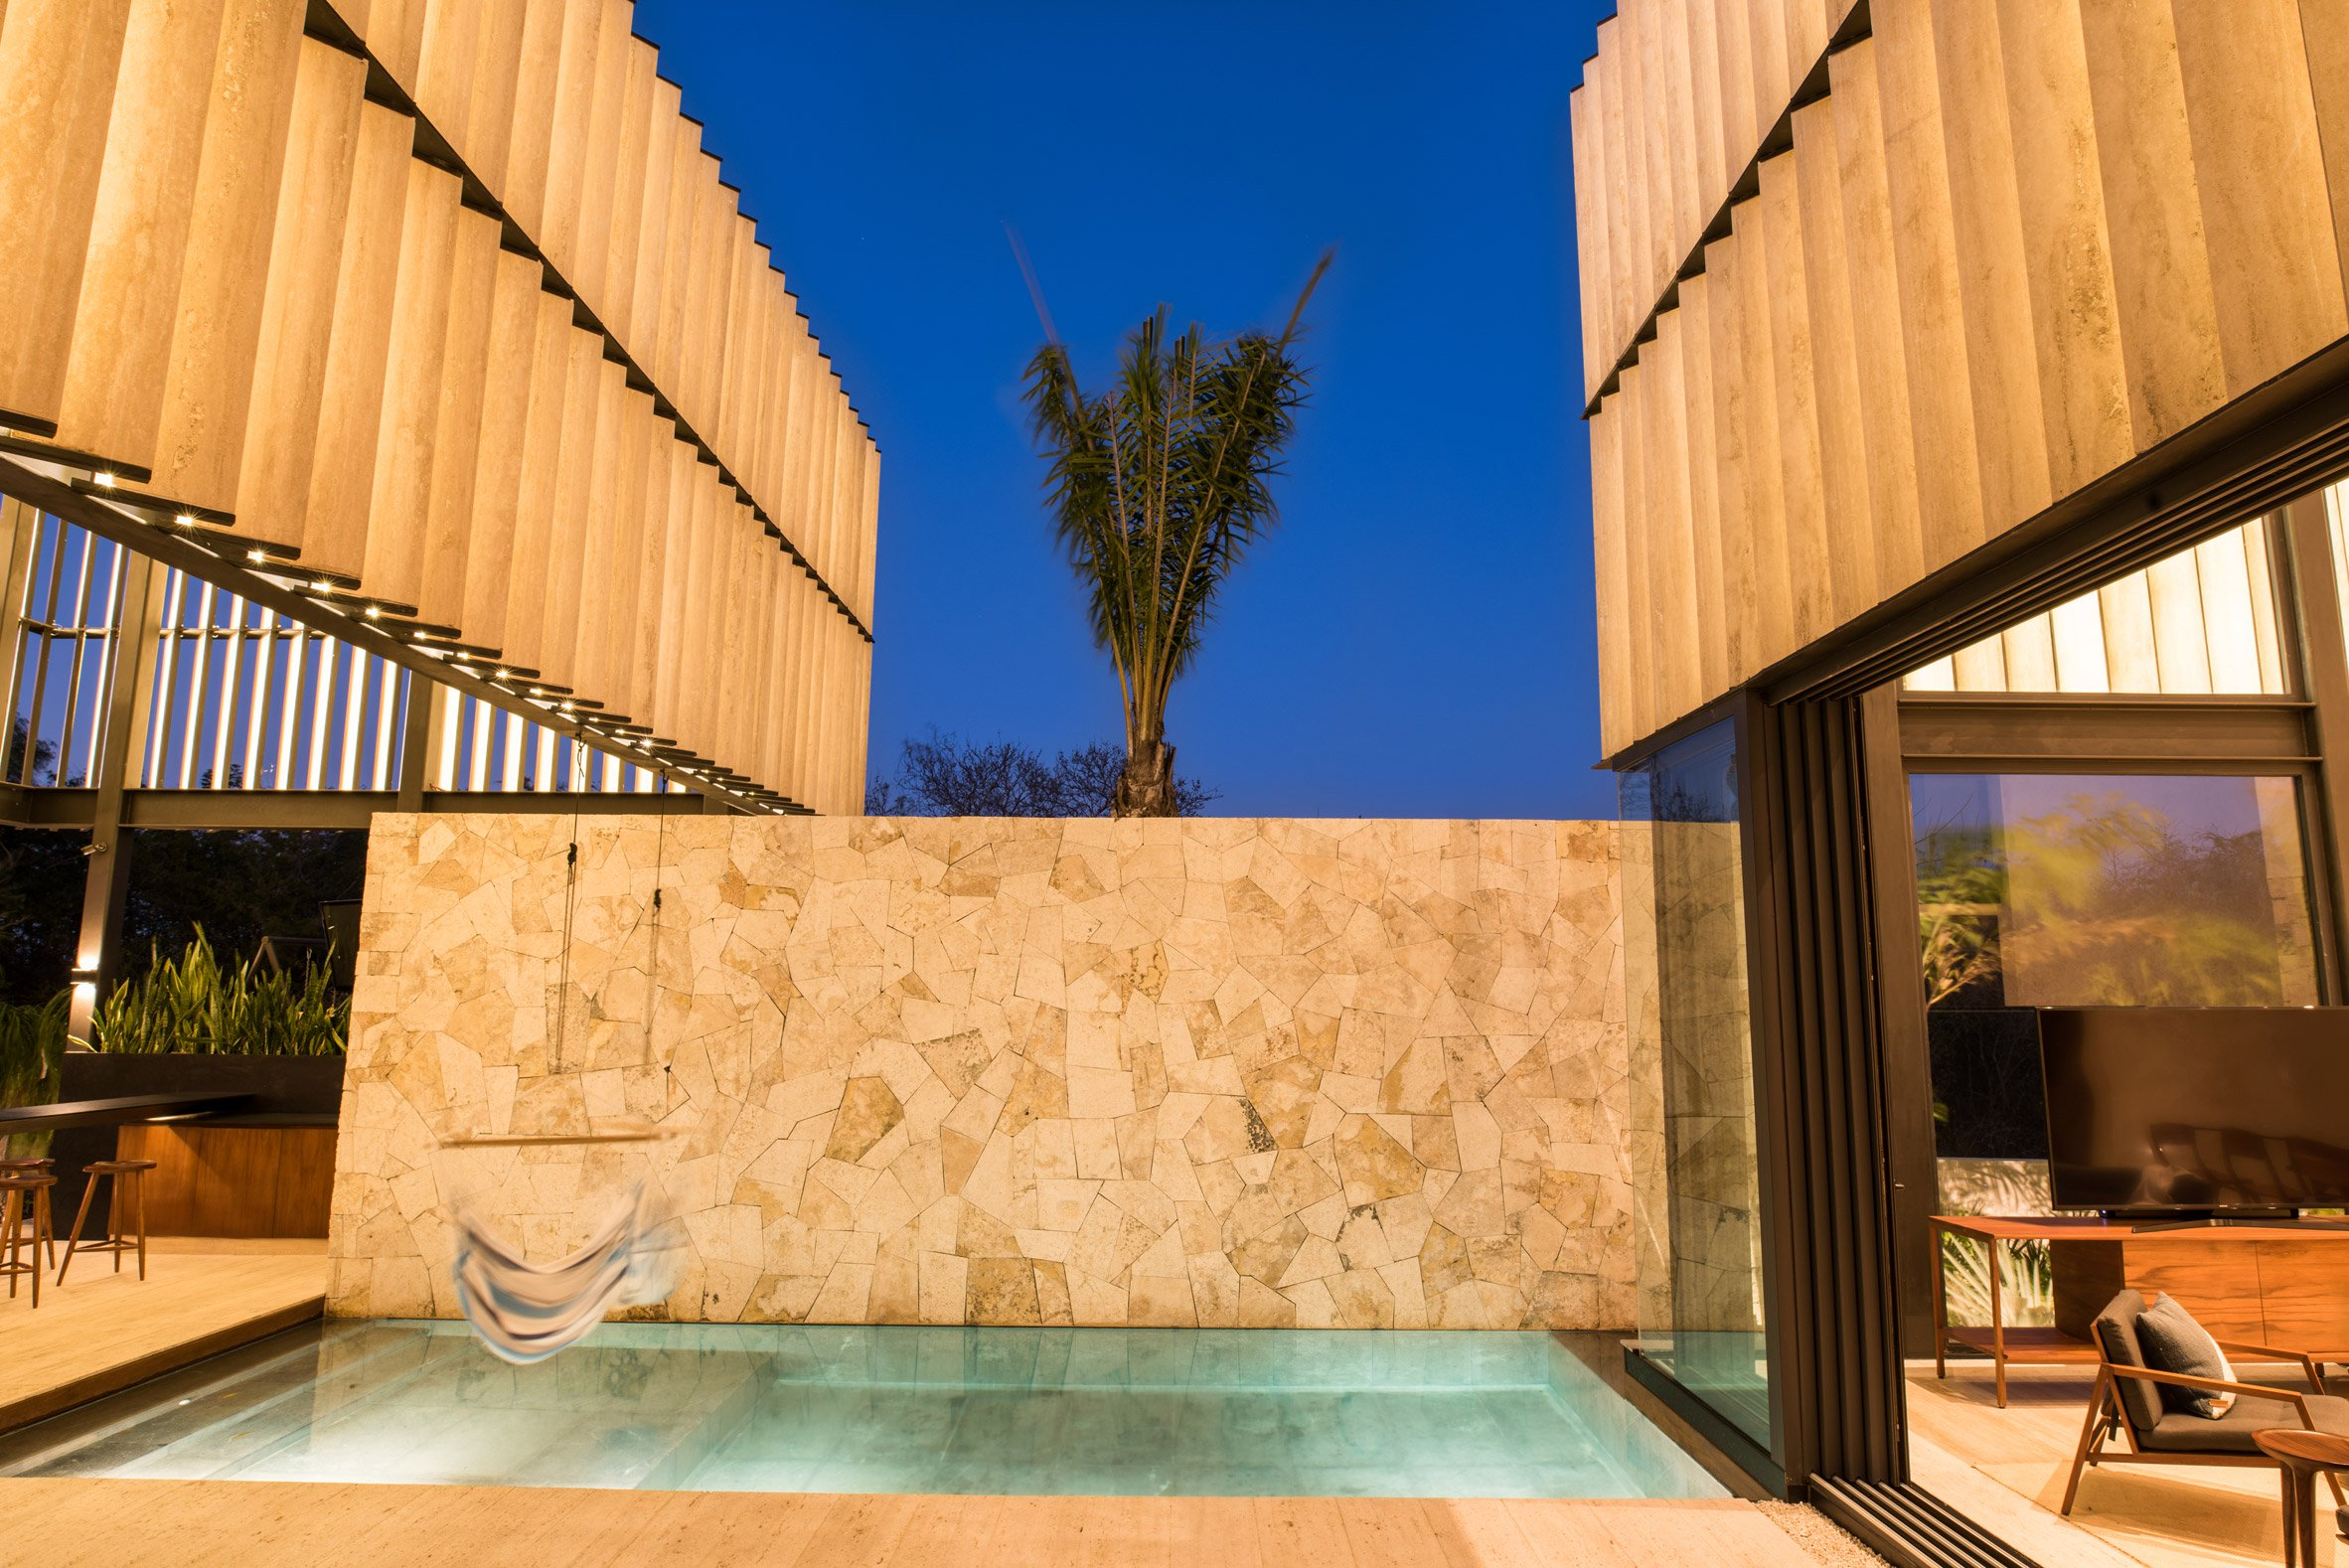 casa chaaltun tescala architects architecture residential houses mexico dezeen 2364 col 8 - Wonderful modern house with slatted marble walls in Mexico